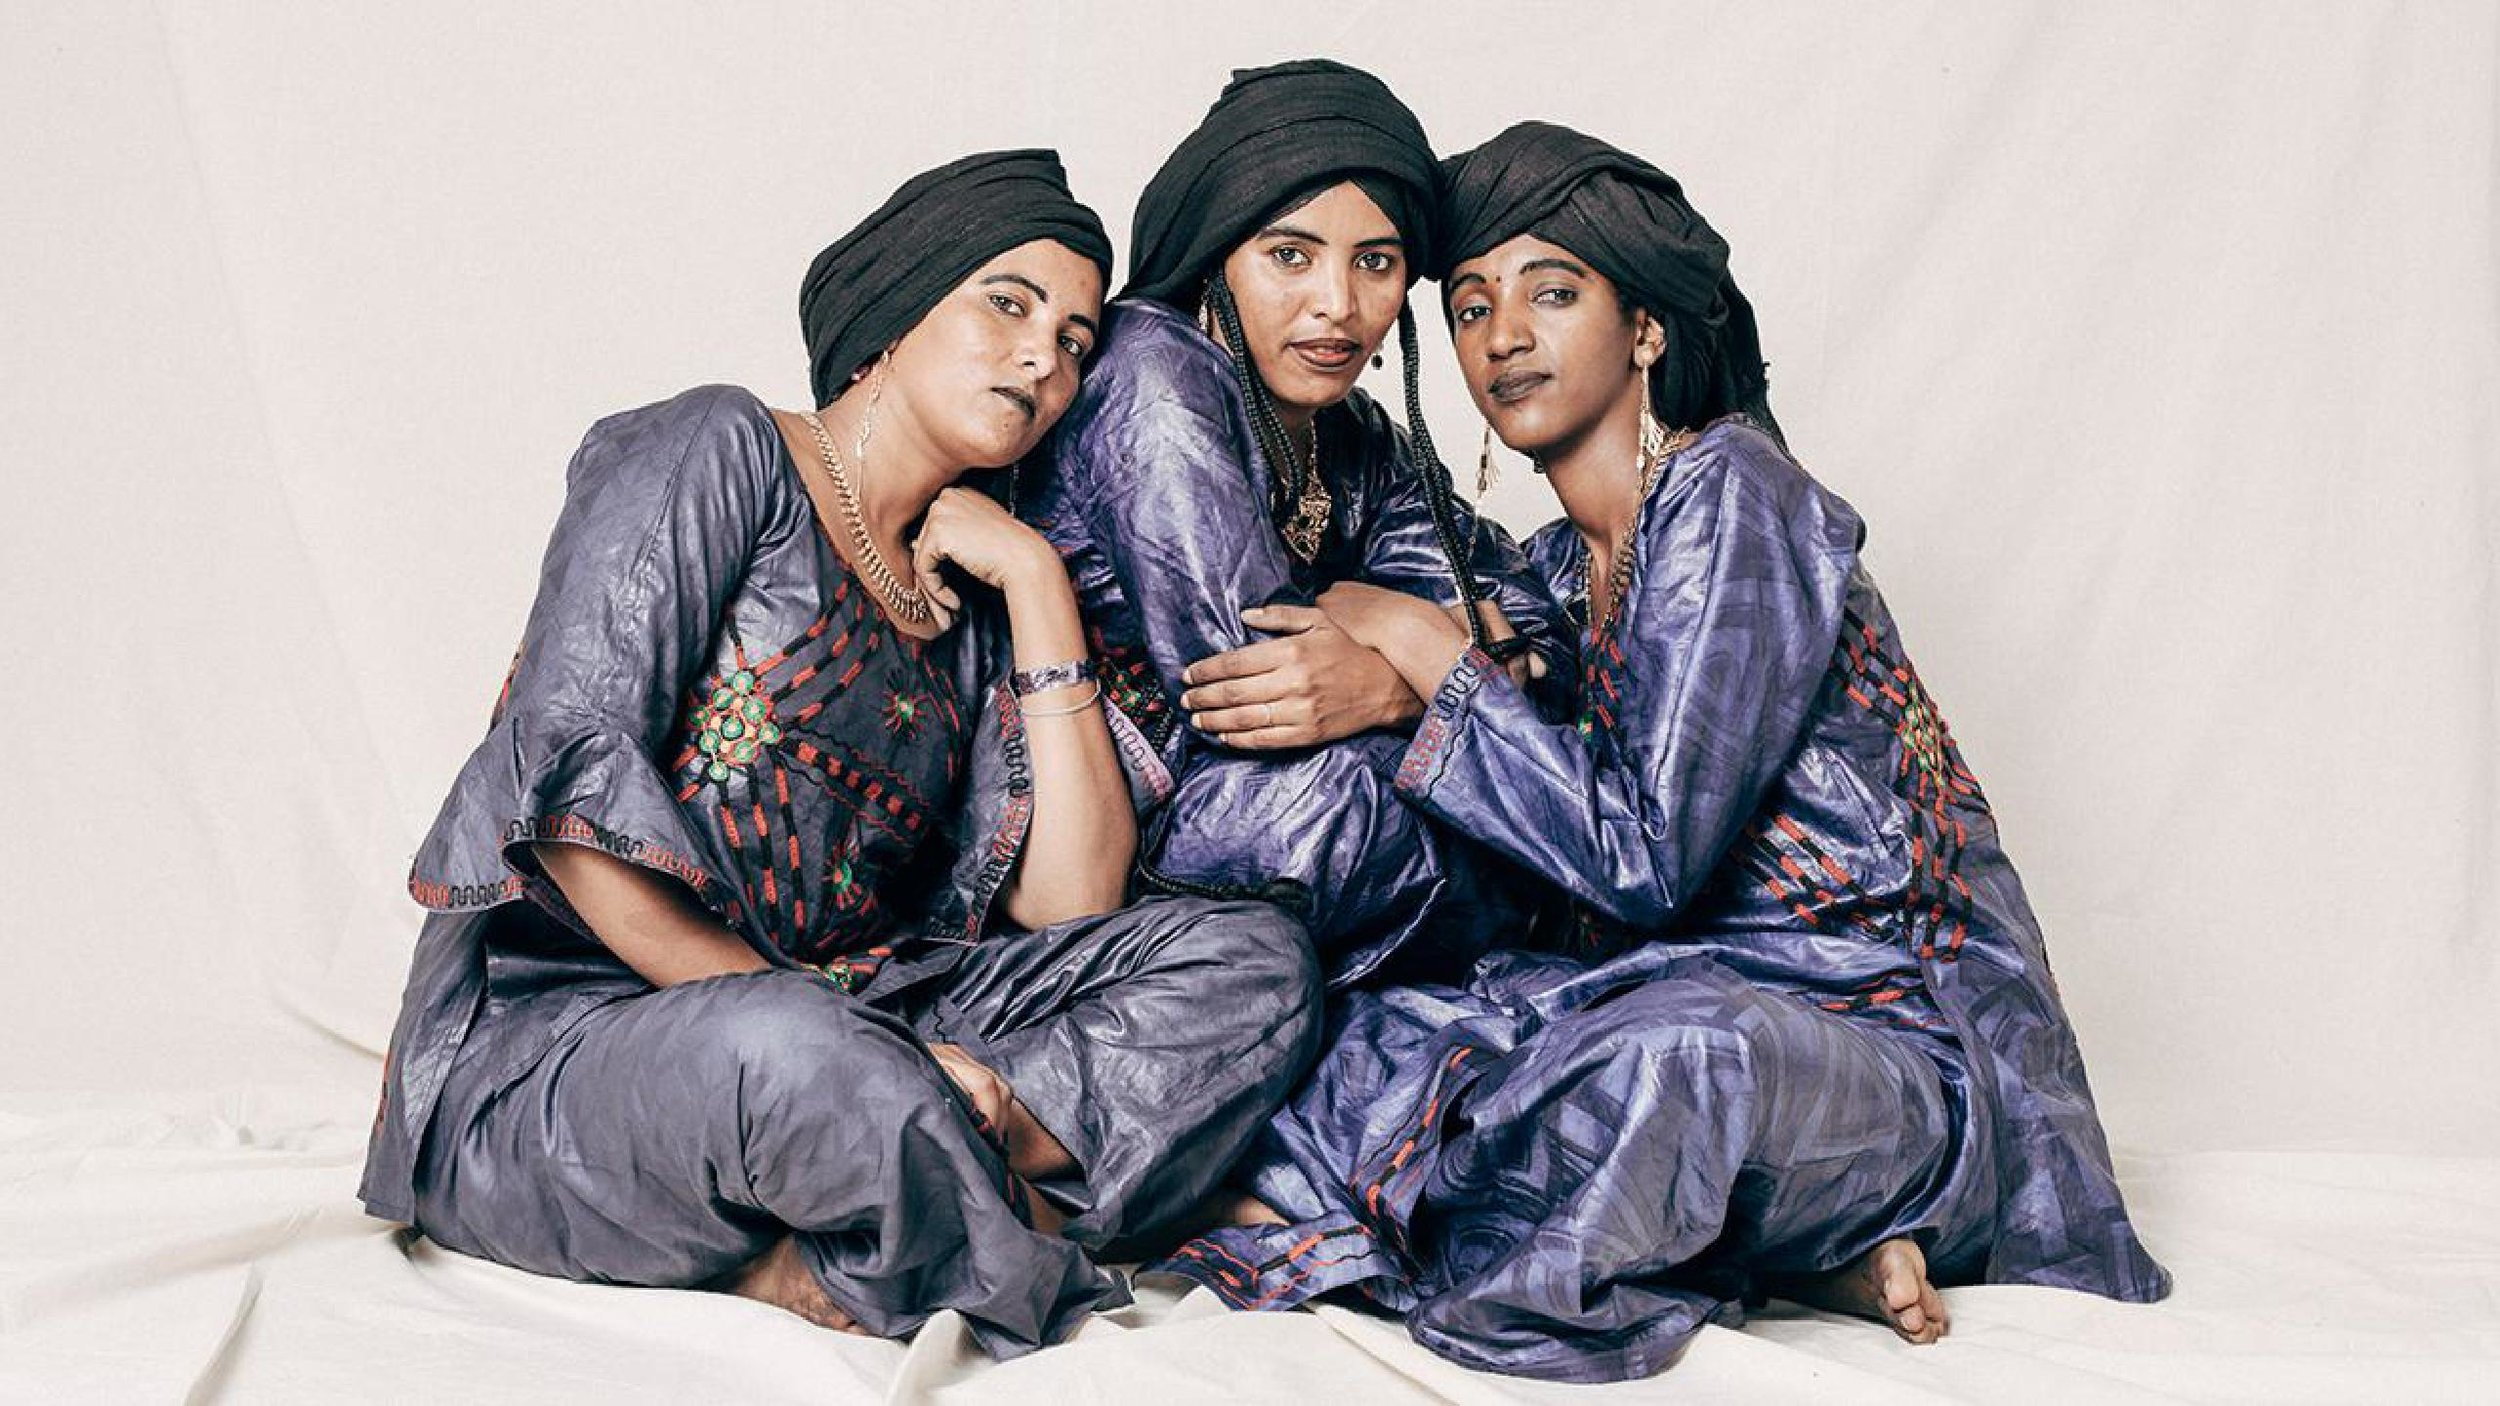 "LES FILLES DE ILLIGHADAD - ""The Girls of Illighadad"" are the first female Tuareg guitarists from Niger. Hailing from a small, isolated village on the Sahara where musical styles are divided by gender, their defiance of tribal norms has resulted in a breath-taking new sound that is mesmerizing audiences across the world. We are beyond thrilled to present them to you as part of their US debut tour."